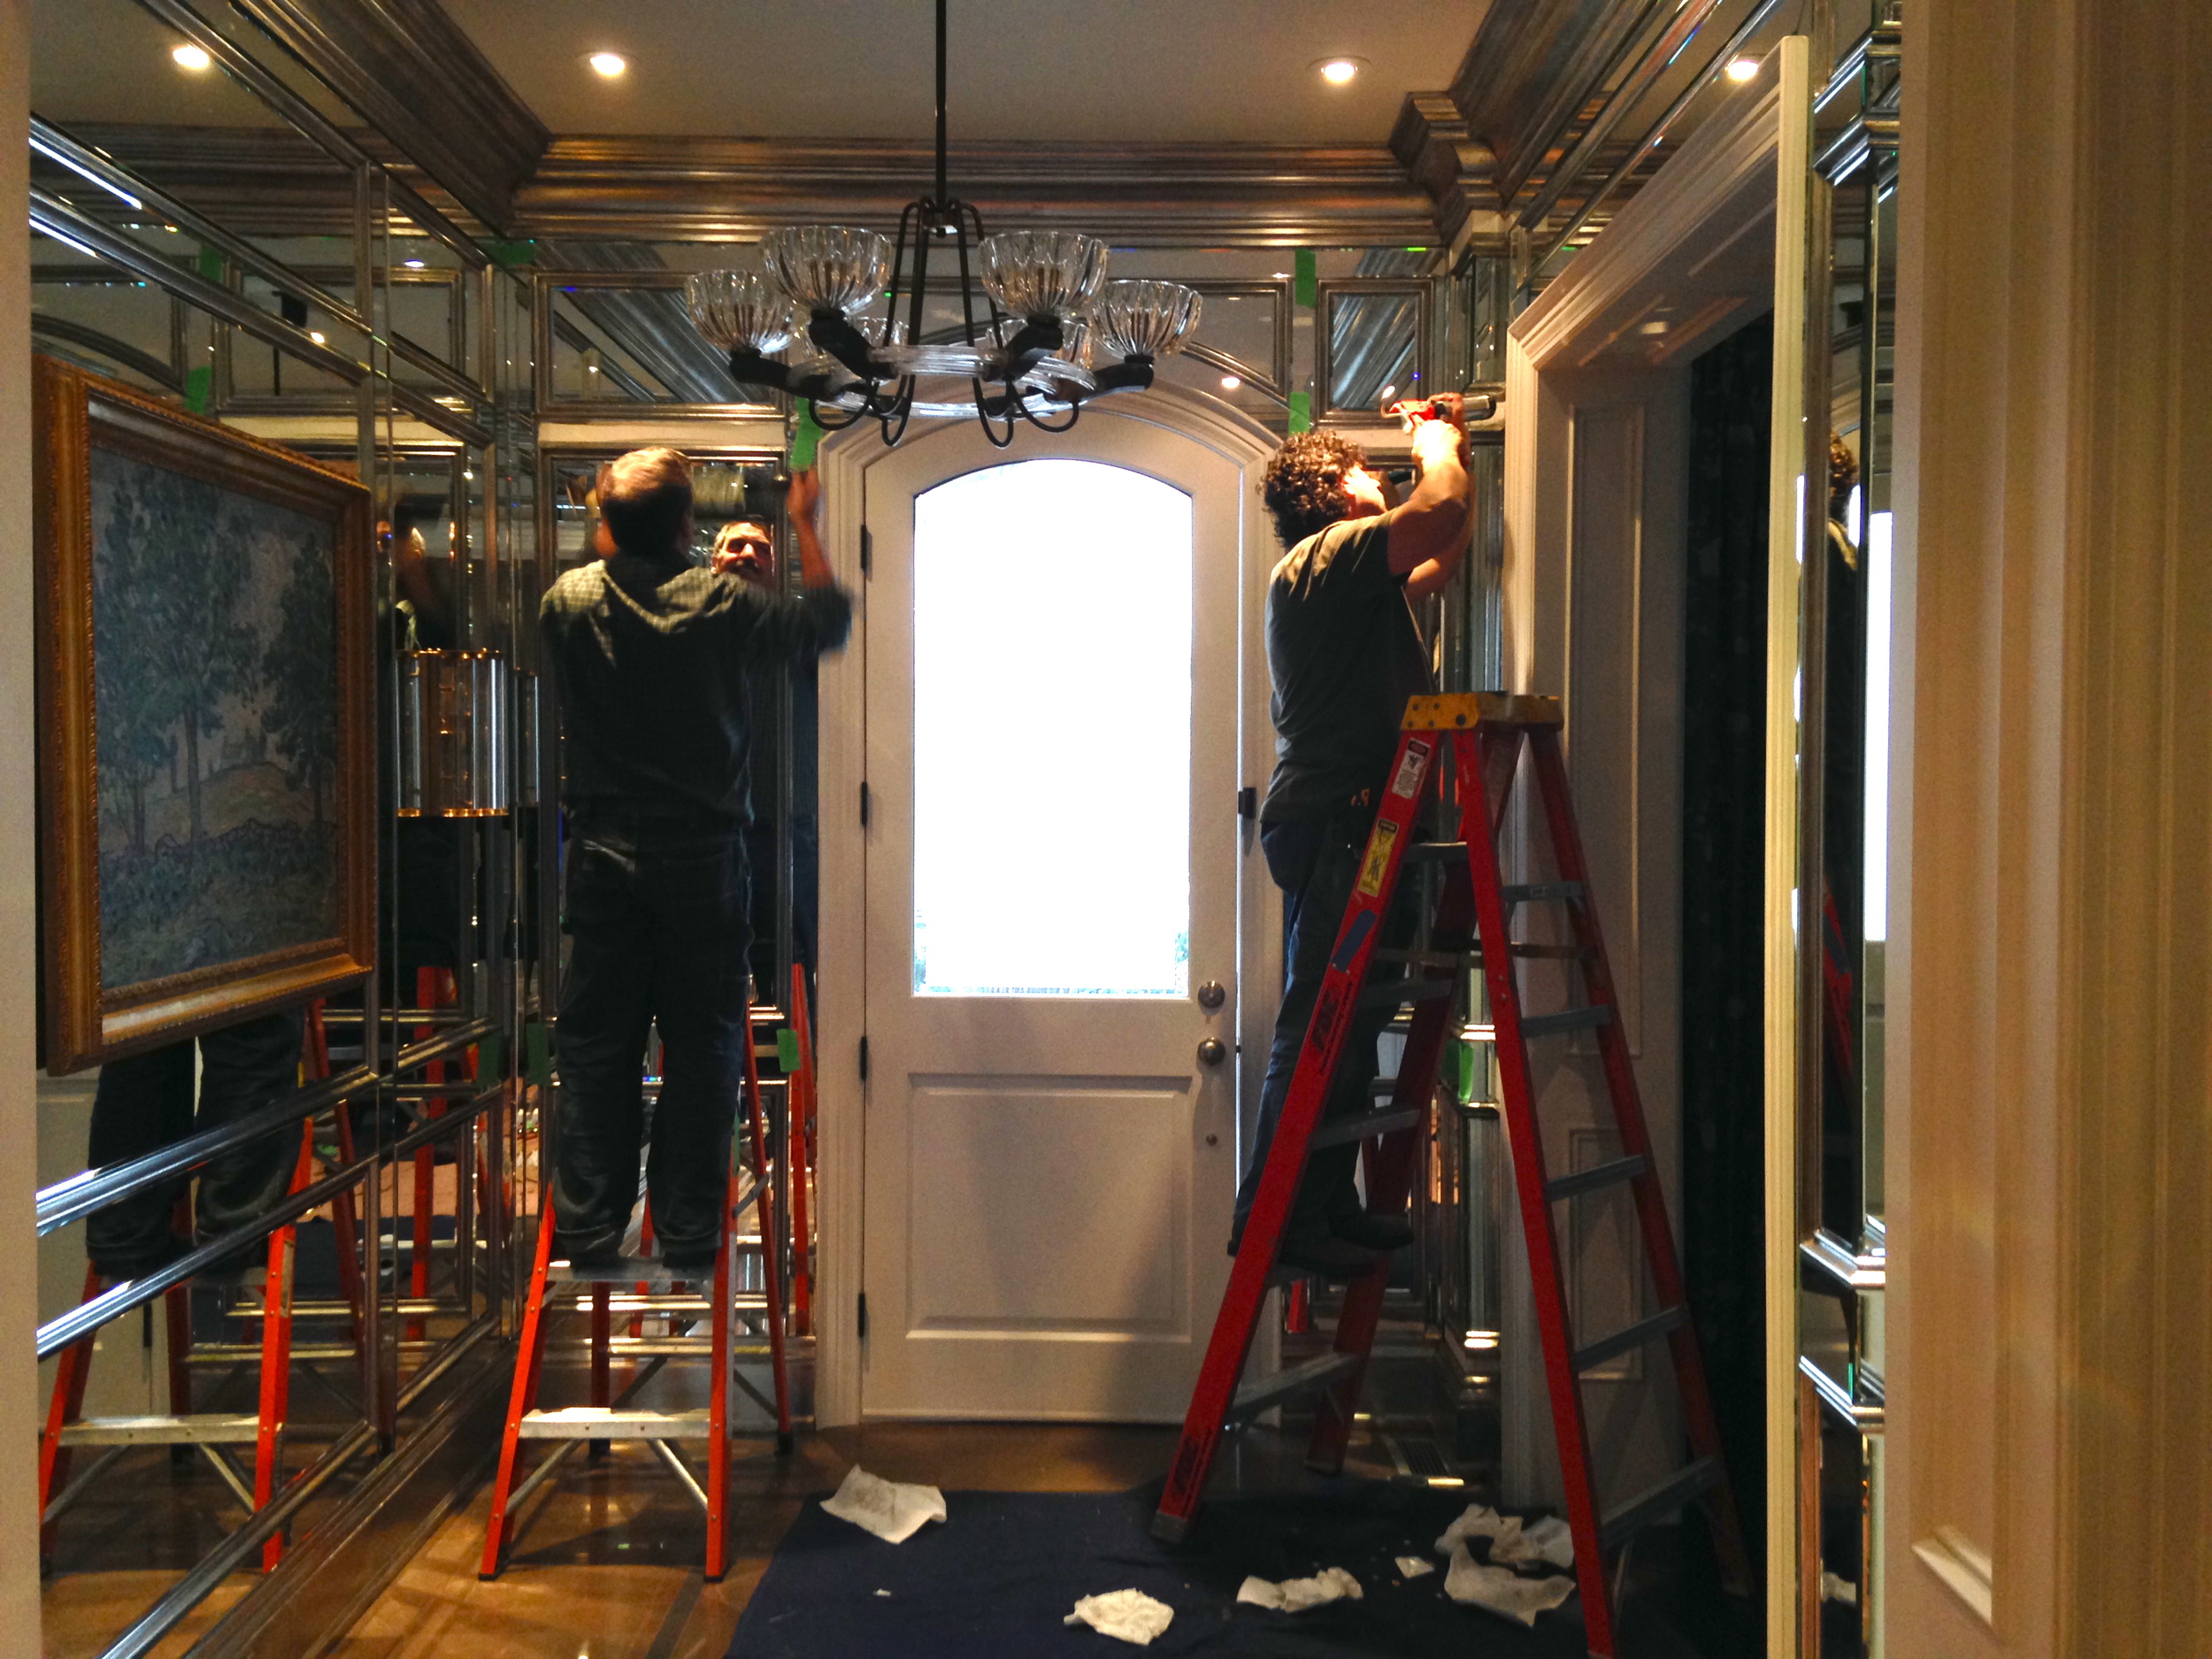 In process - installing the final mirrors.